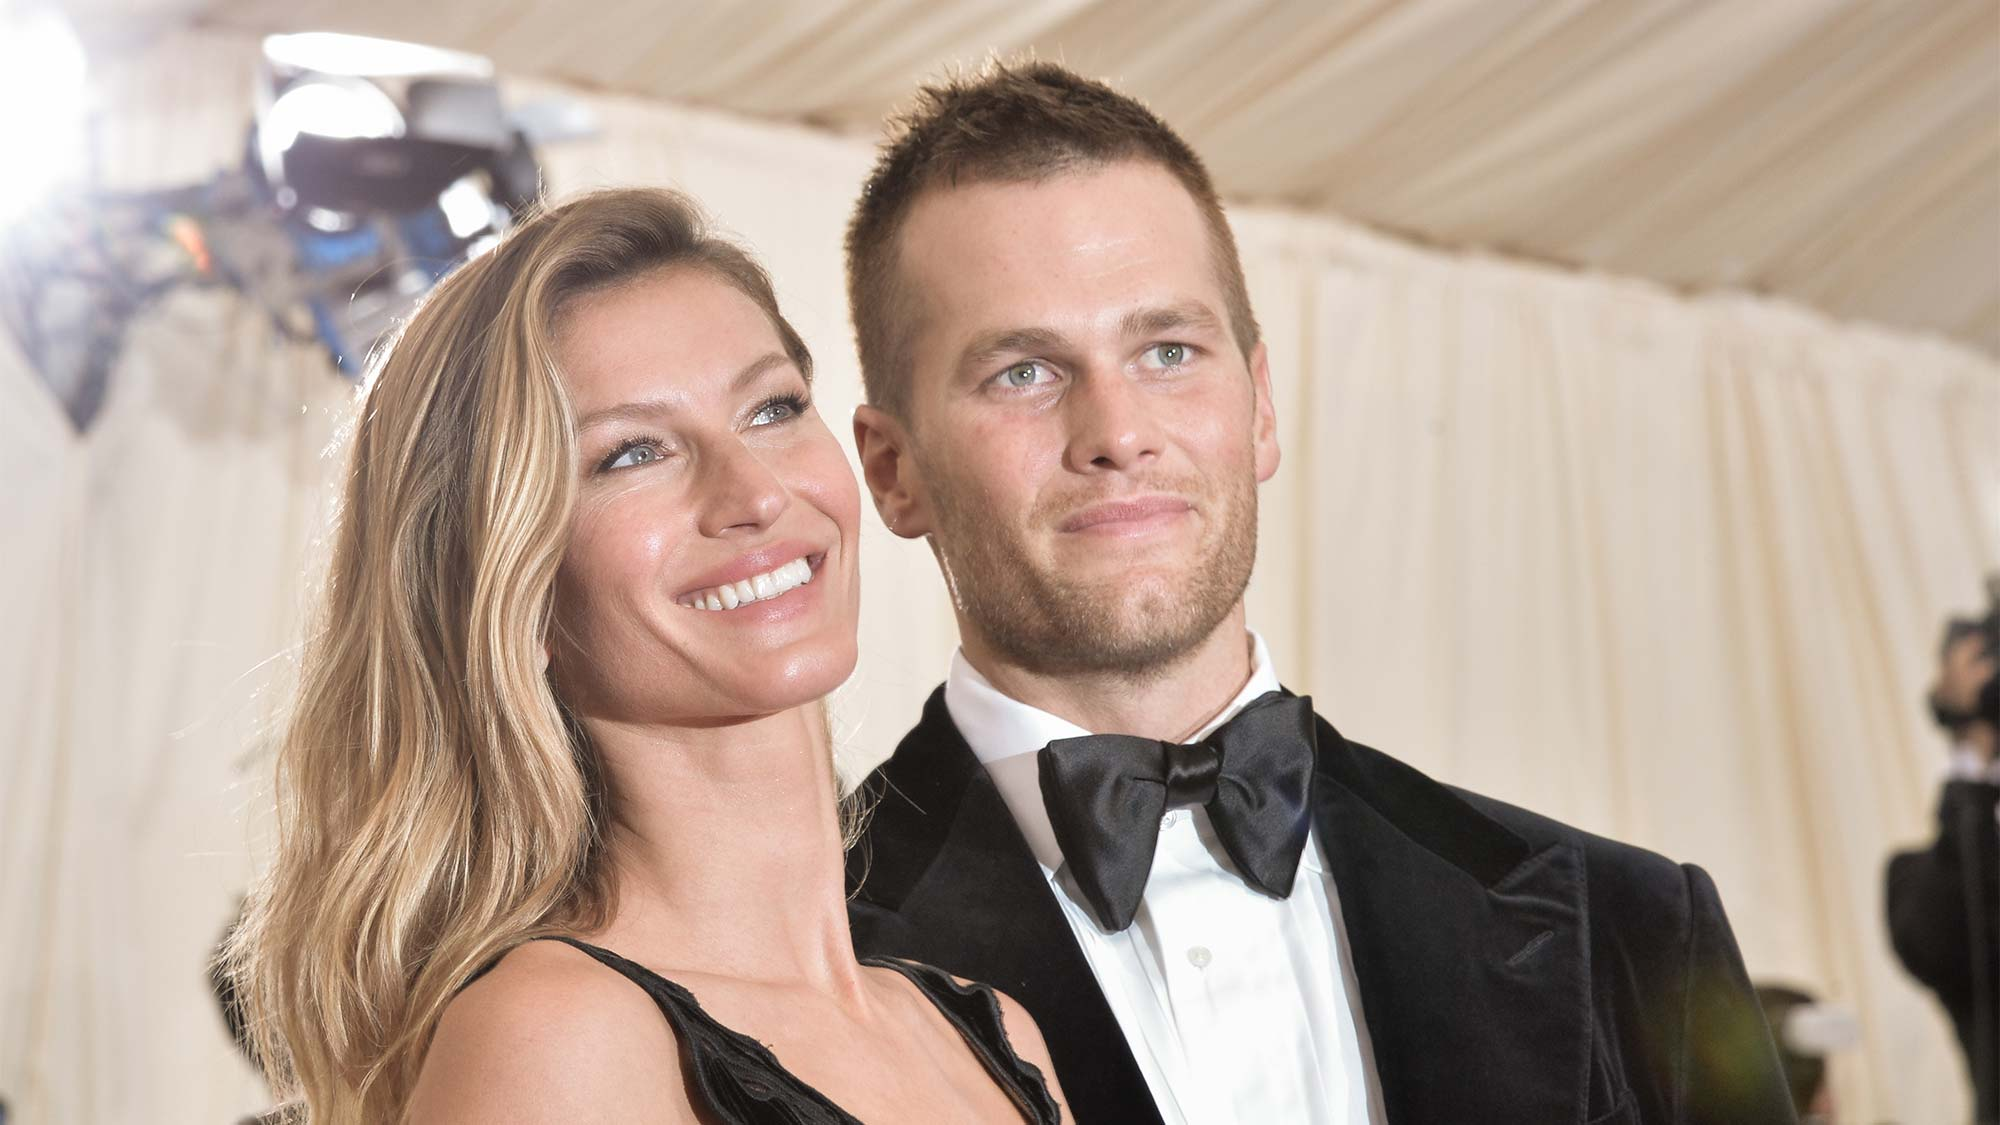 Tom Brady opens up about marriage to Gisele Bundchen - Fox News